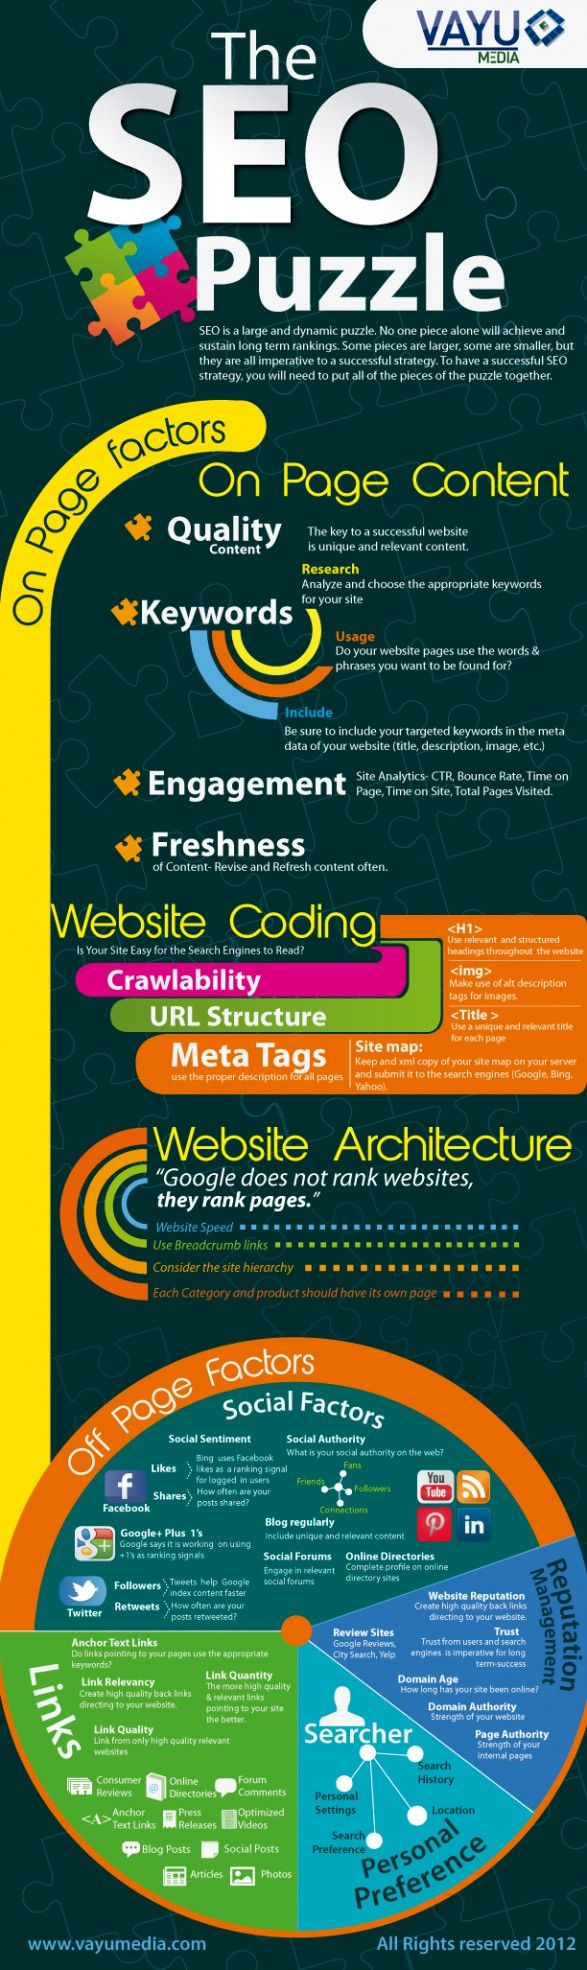 The #Seo Puzzle #infographic #smm #socialmedia #in: Seopuzzl, Seo Puzzles, Social Media, Searchengin, Seo, Socialmedia, Search Engine Optimism, Seo Infographic, Puzzles Infographic